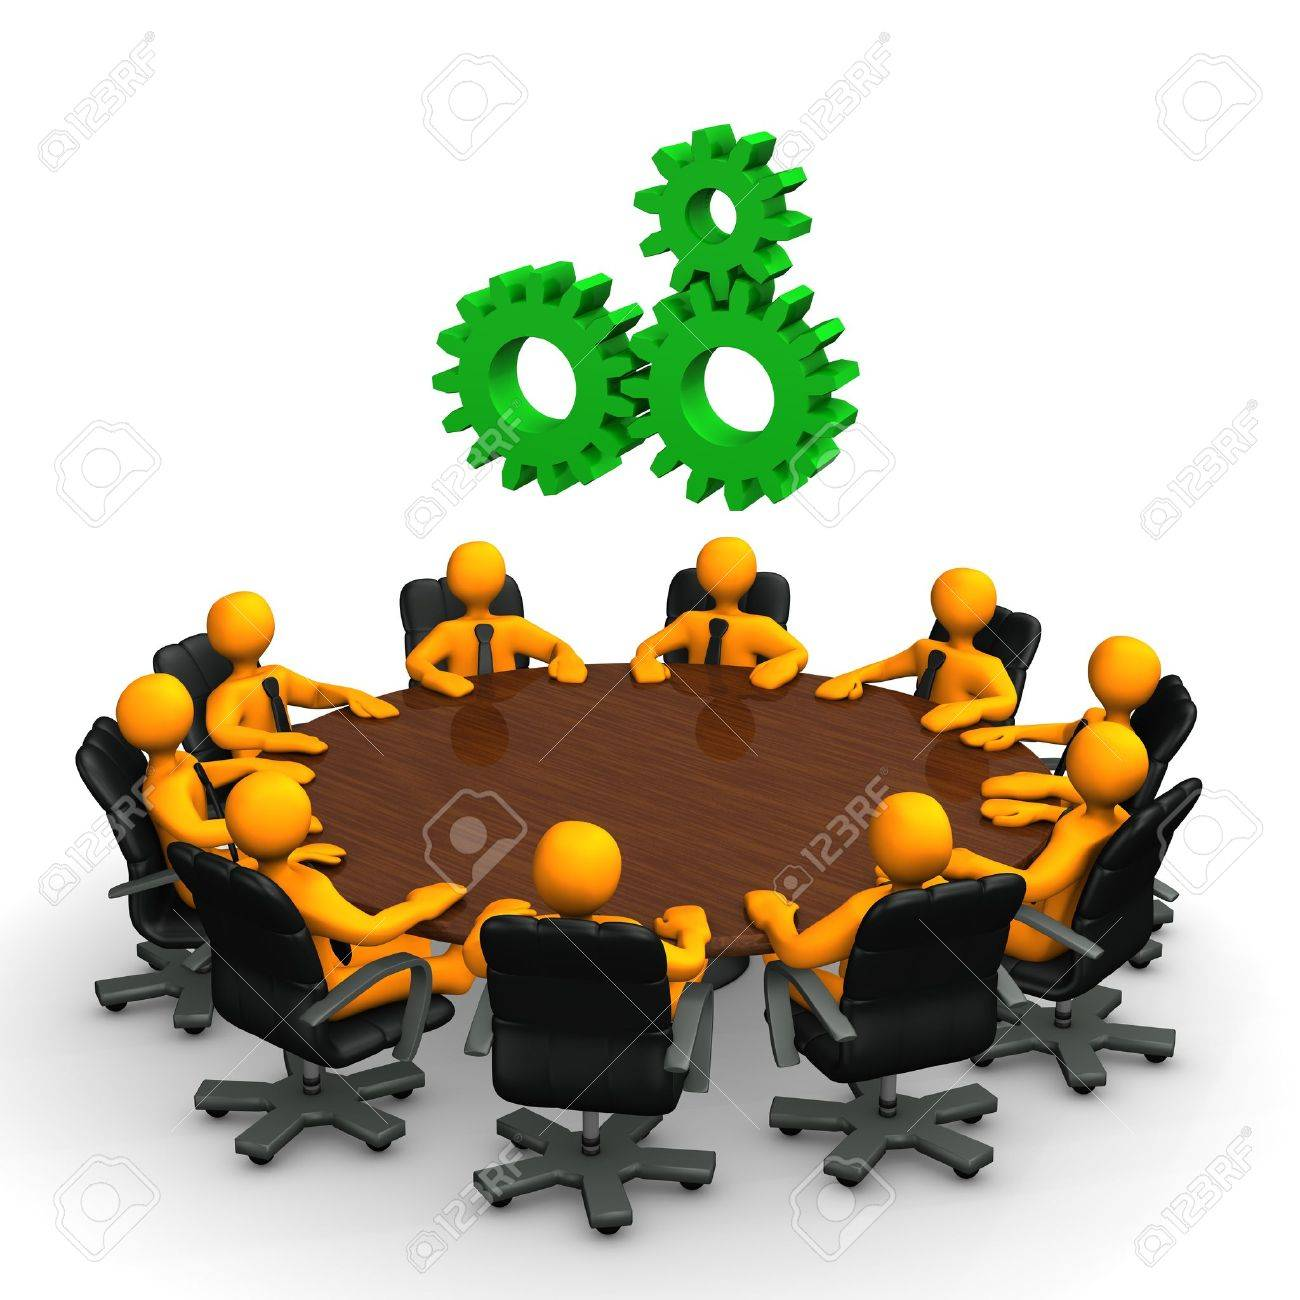 Round table meeting icon - Round Table Meeting Orange Cartoon Characters With Green Gear Wheels On The Round Table